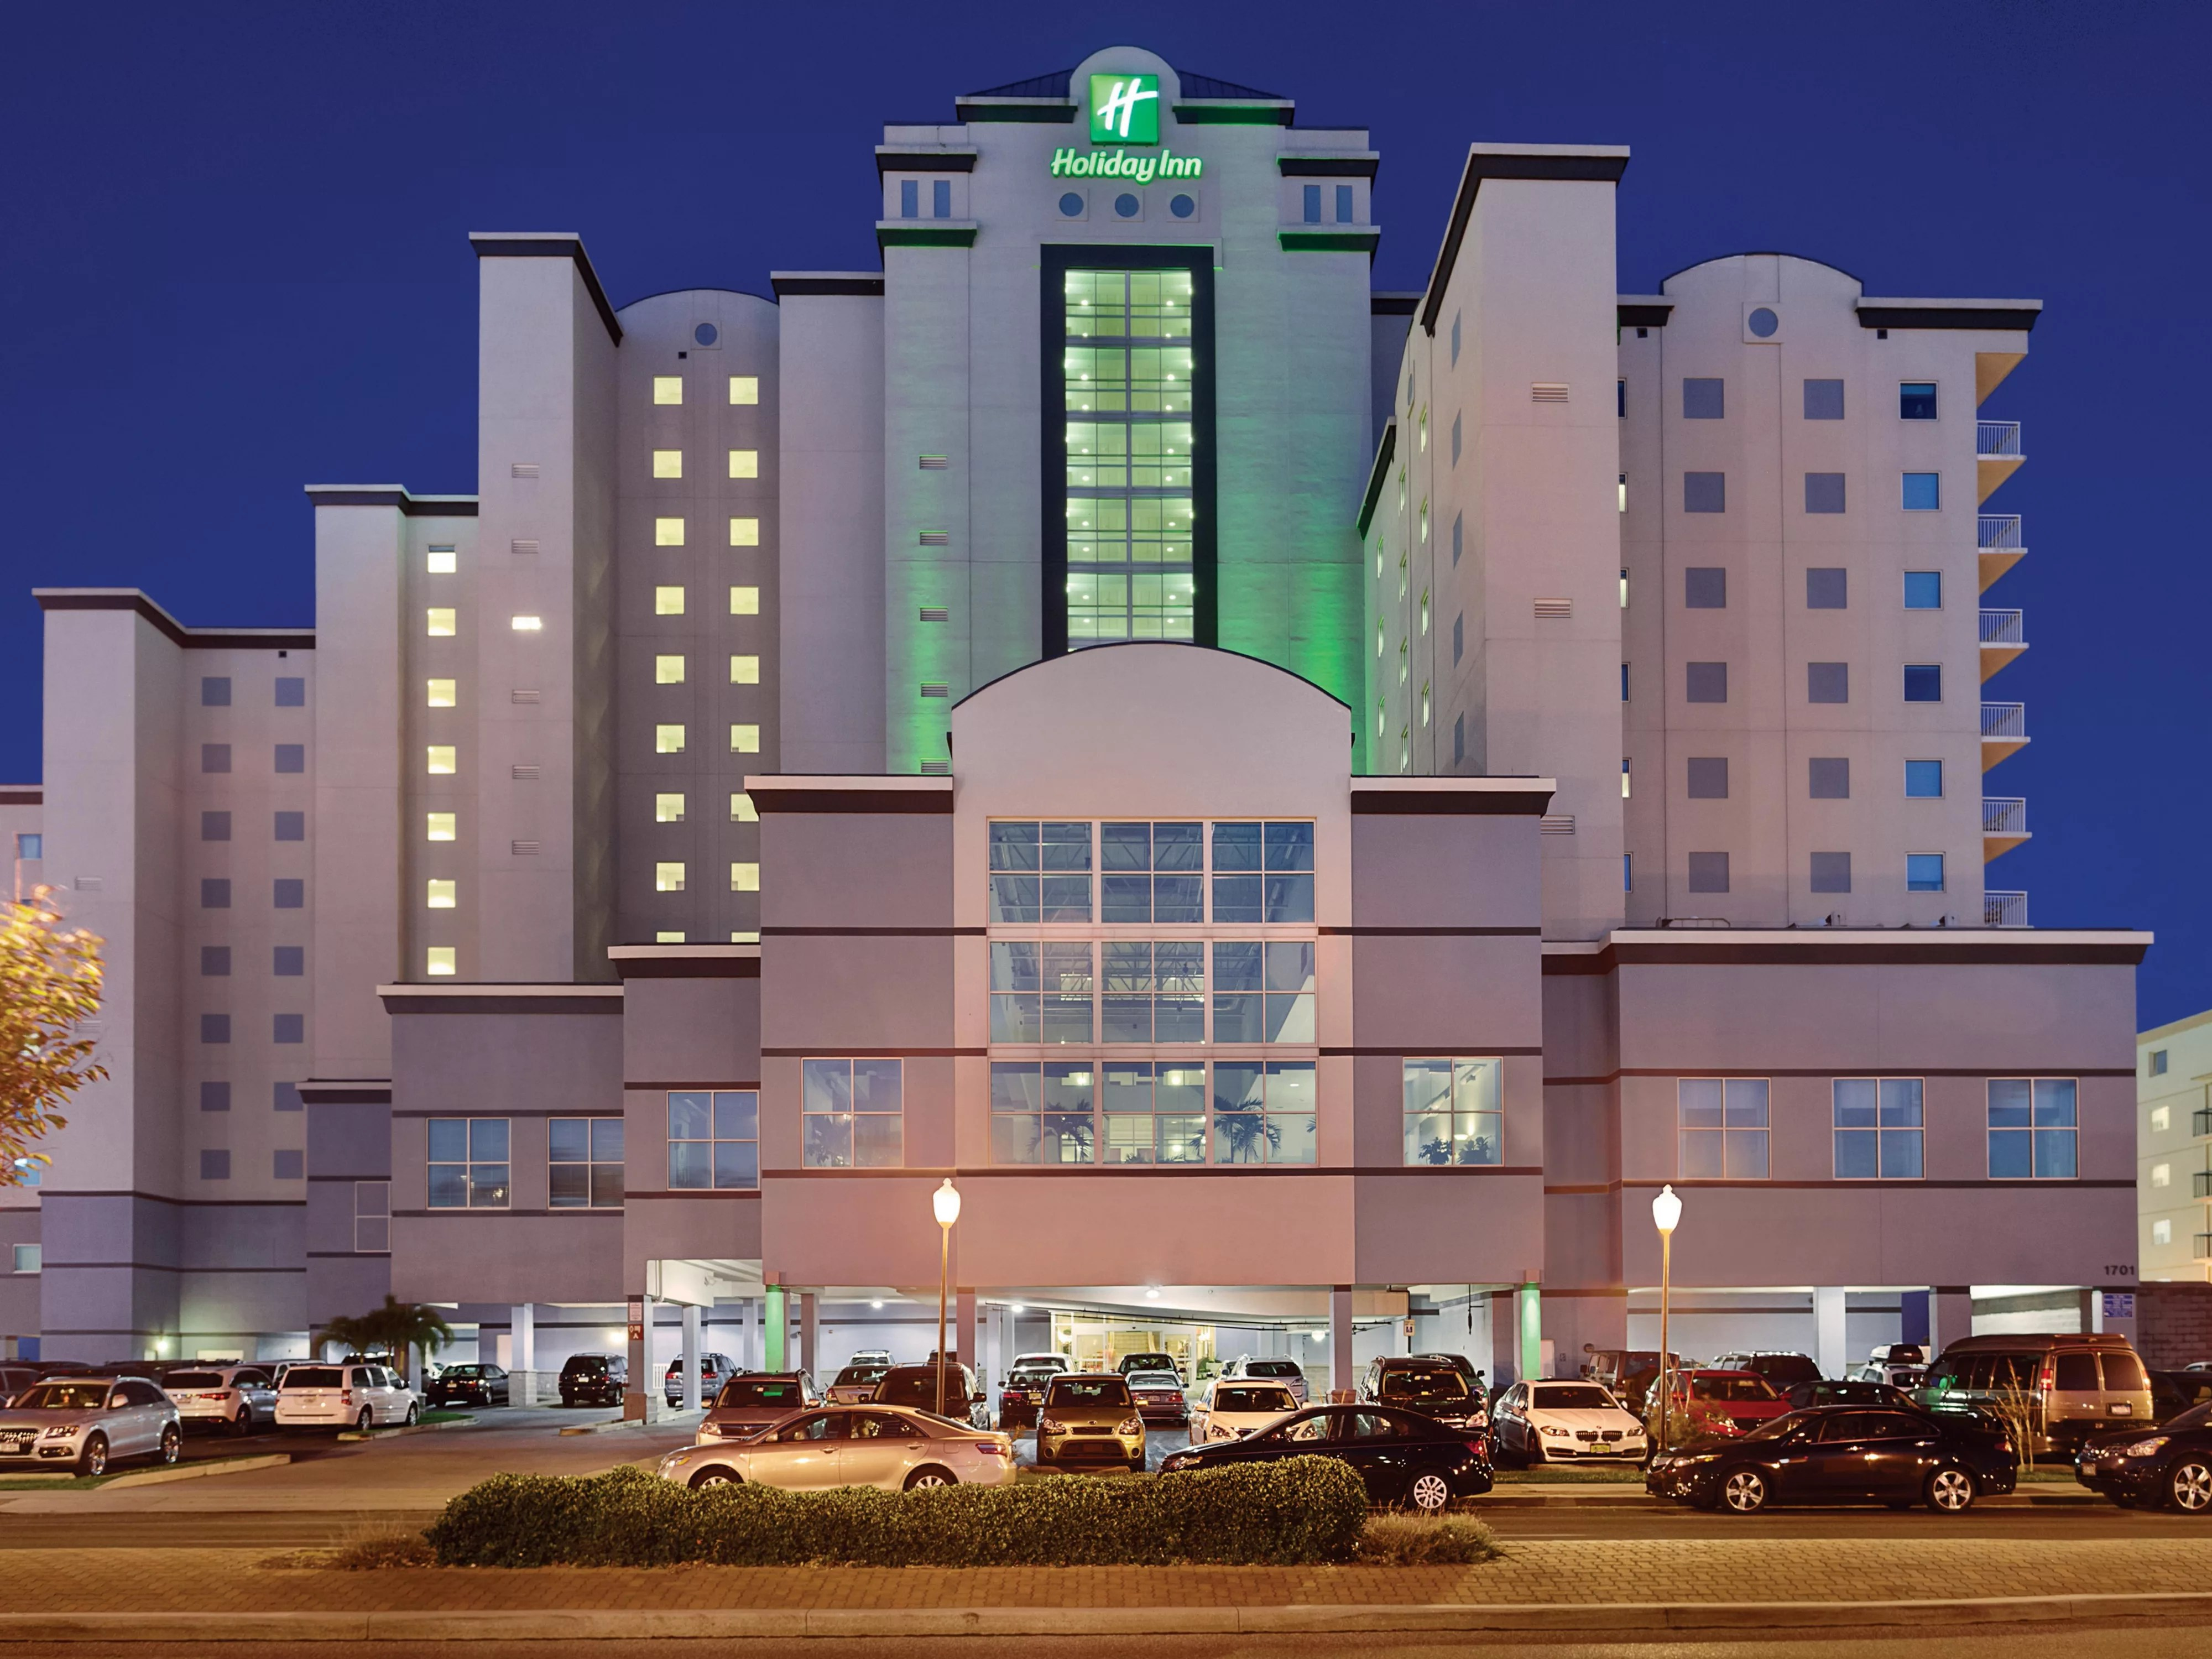 Hotel Rehoboth Ocean City Hotel In Maryland Holiday Inn Suites Ocean City